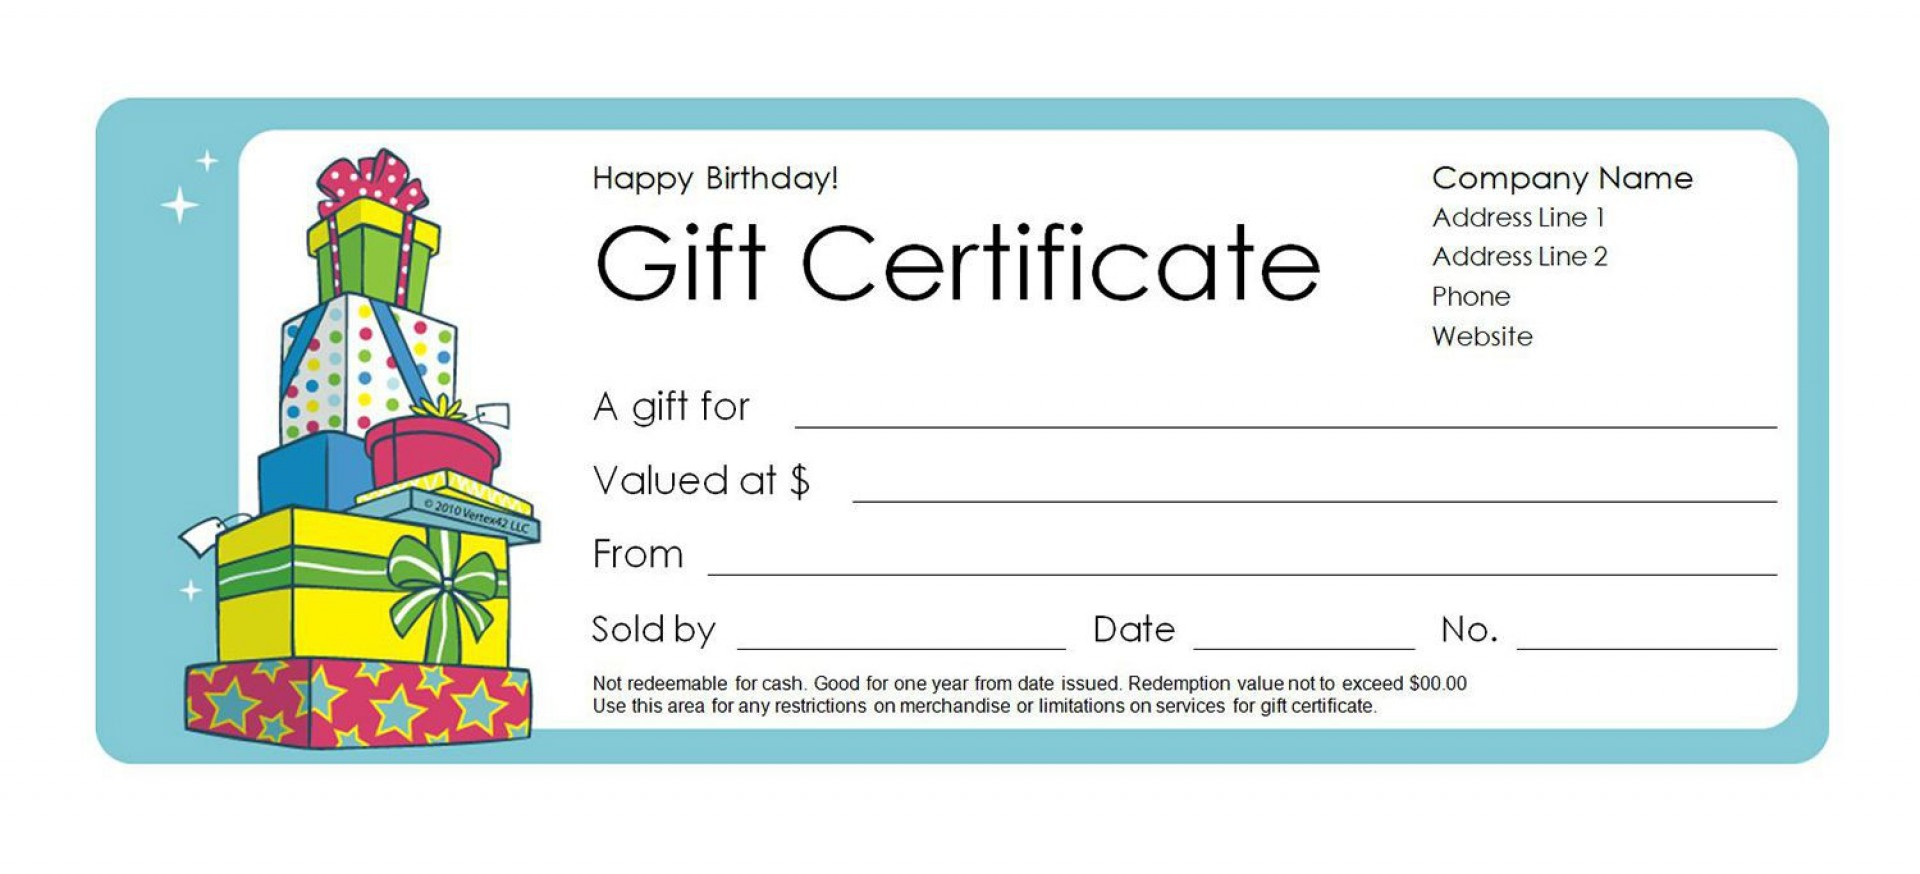 003 Formidable Template For Gift Certificate Photo  Microsoft Word Massage Christma Free Download1920